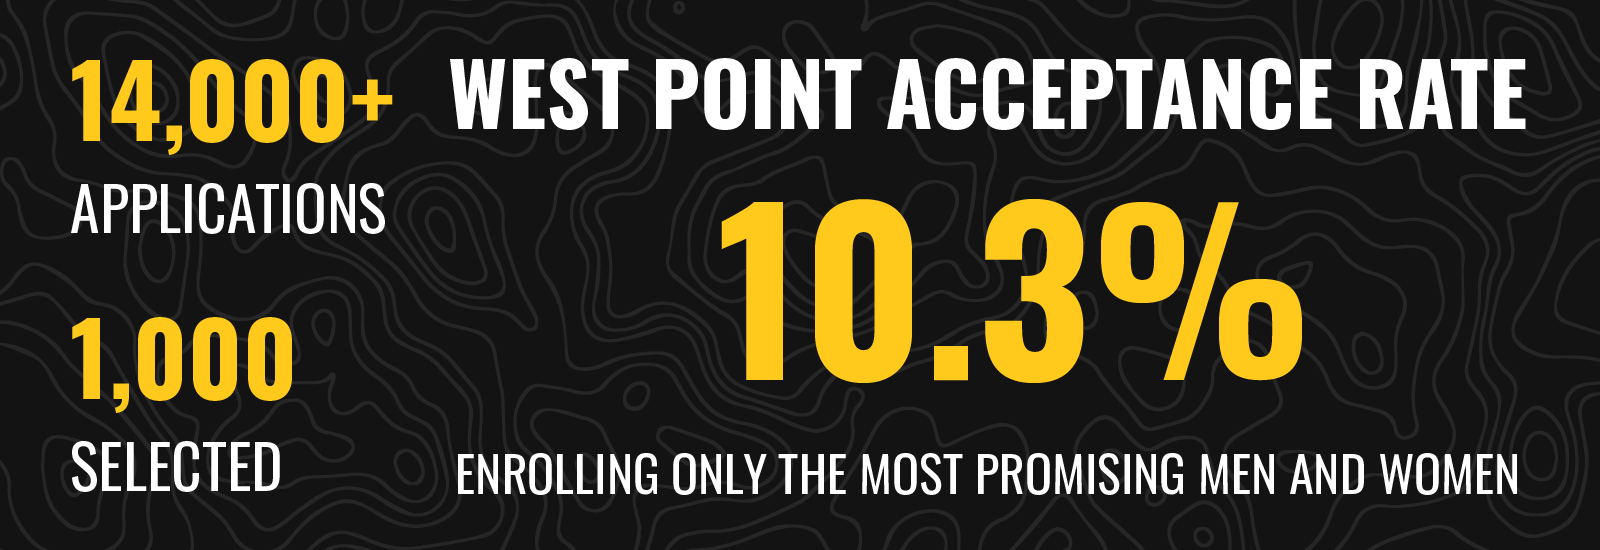 West Point has a 10.3% acceptance rate, where out of 14,000 applications only 1,000 candidates are selected.